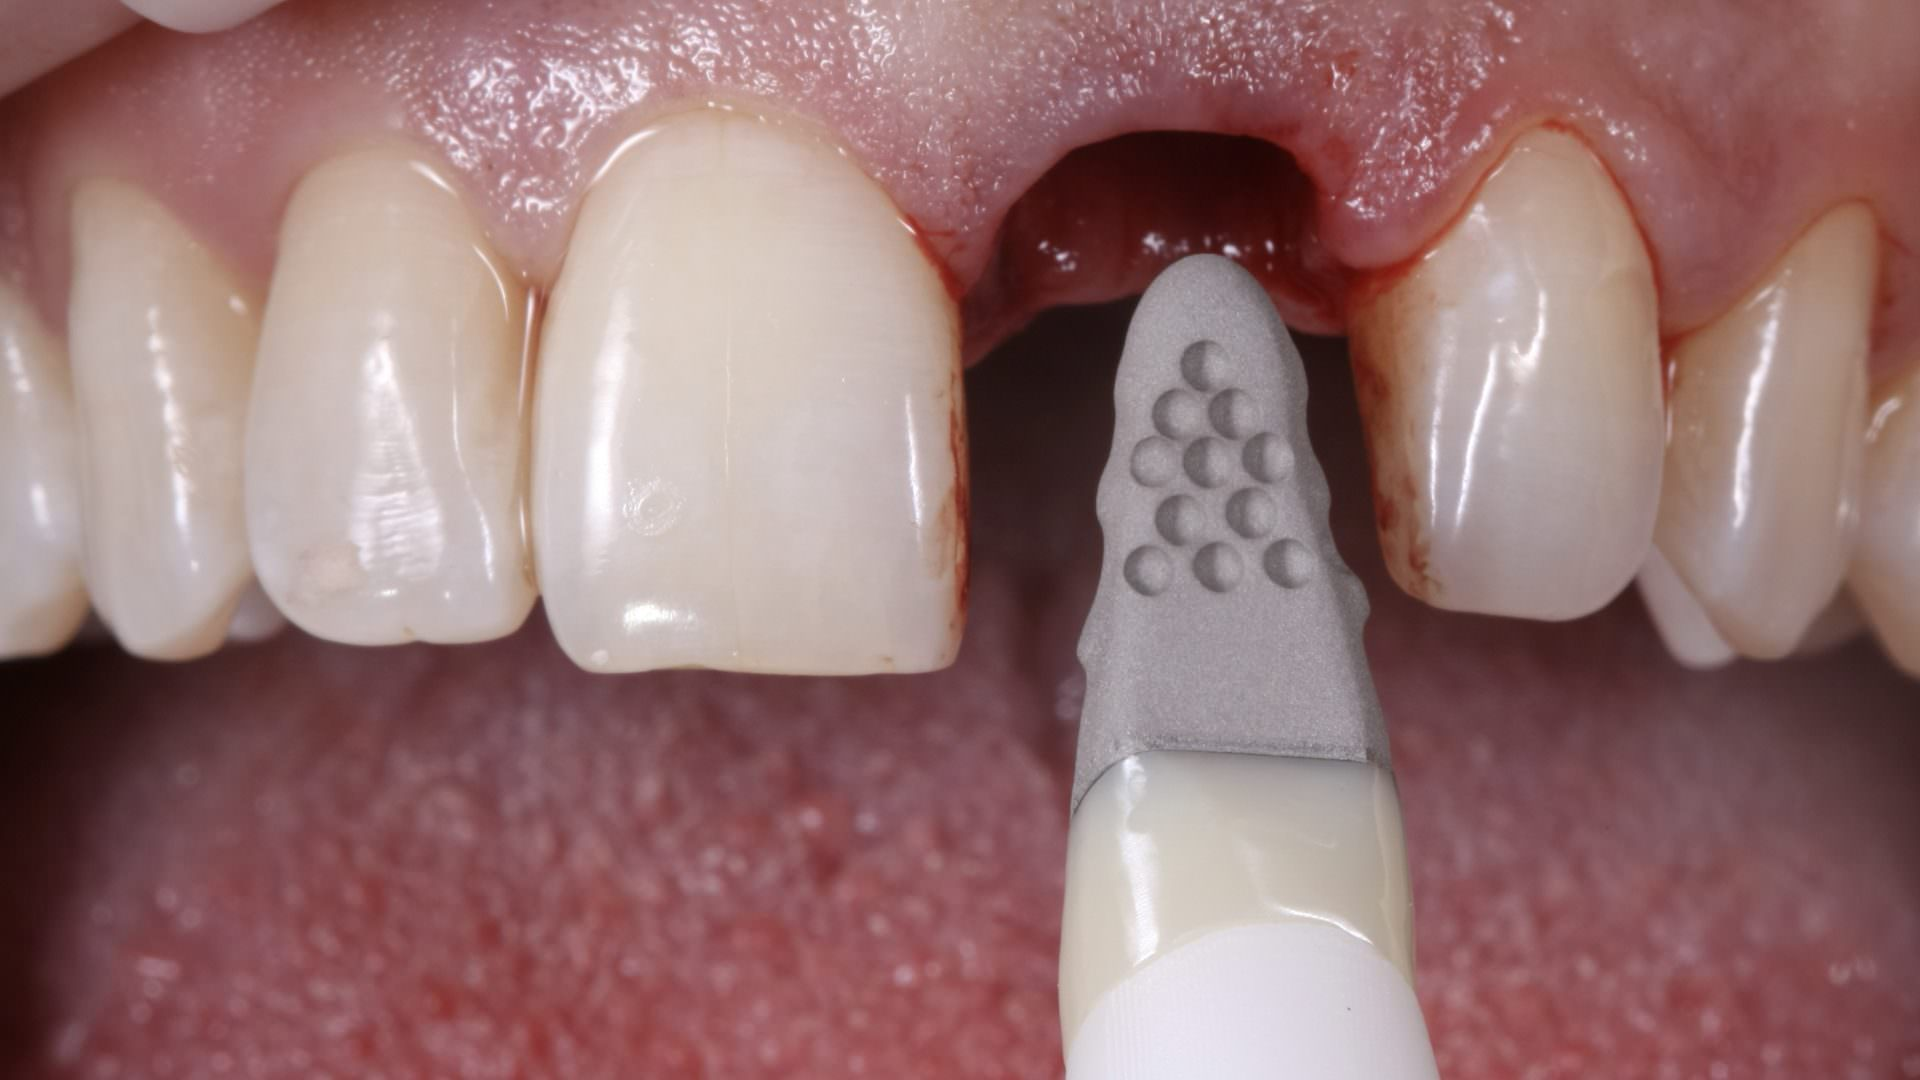 Inserting the implant